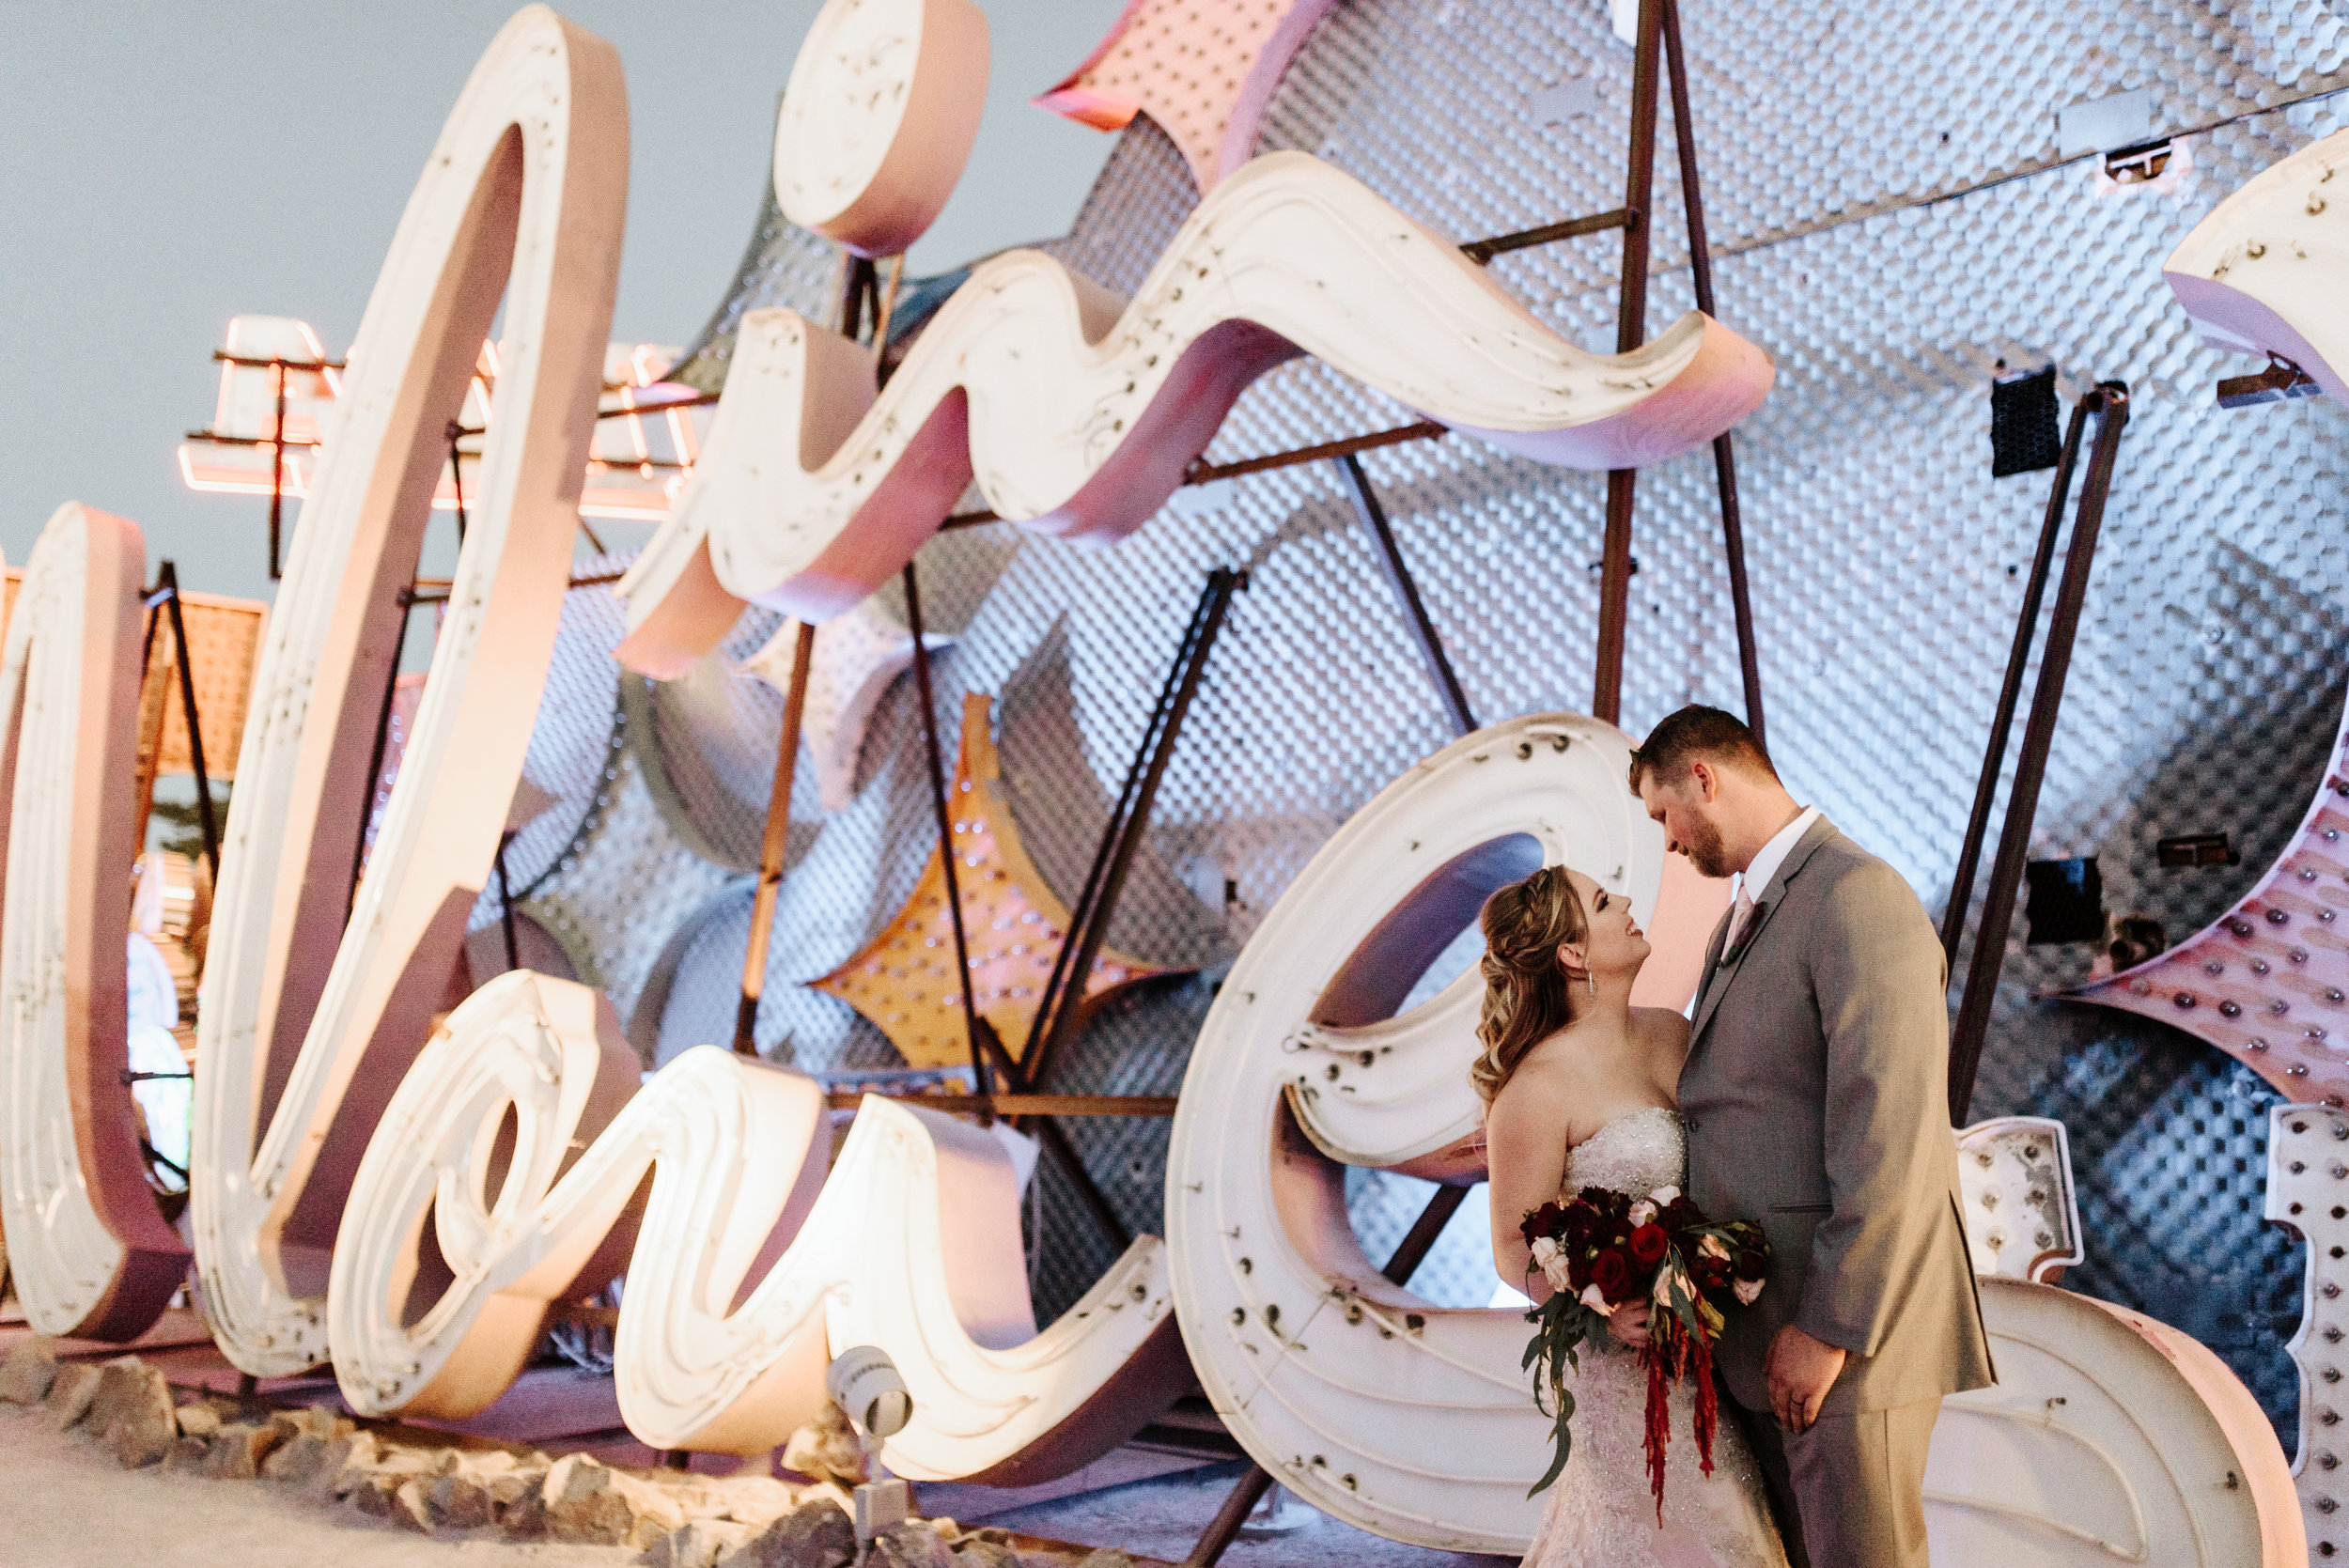 Neon-Museum-Wedding-Las-Vegas-Nevada-Golden-Nugget-Photography-by-V-Ally-and-Dan-3351.jpg